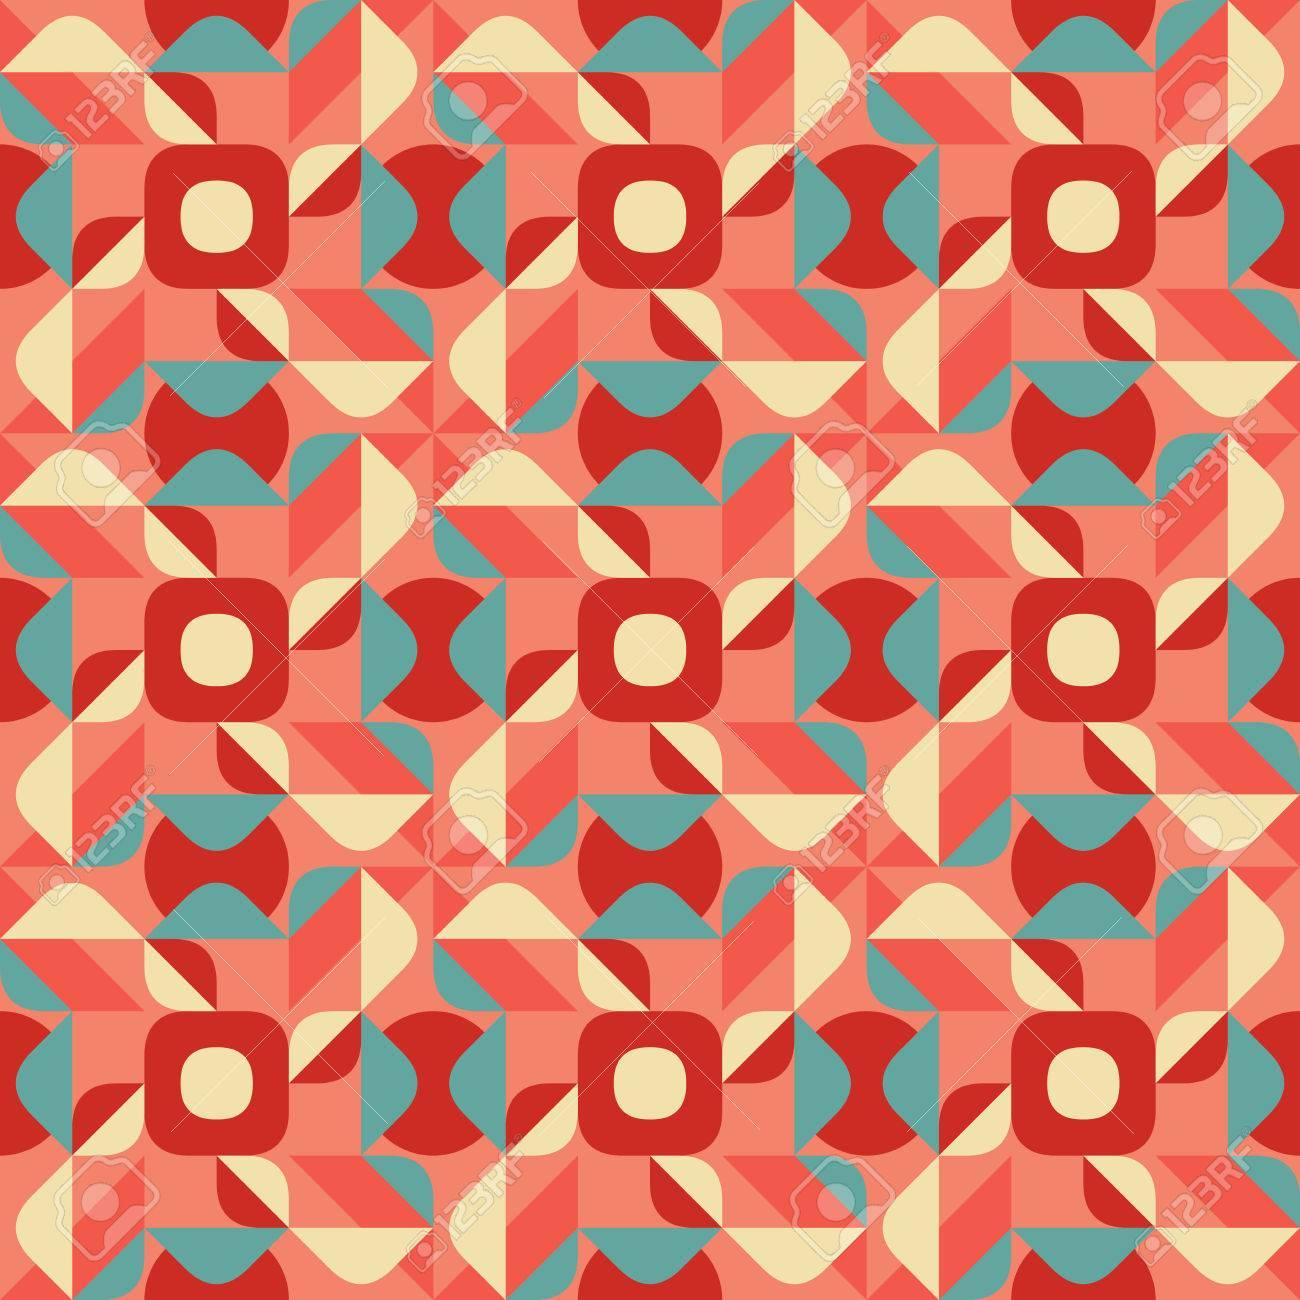 Vector Seamless Blue Pink Color Geometric Ethnic Quilt Pattern ... : ethnic quilt - Adamdwight.com